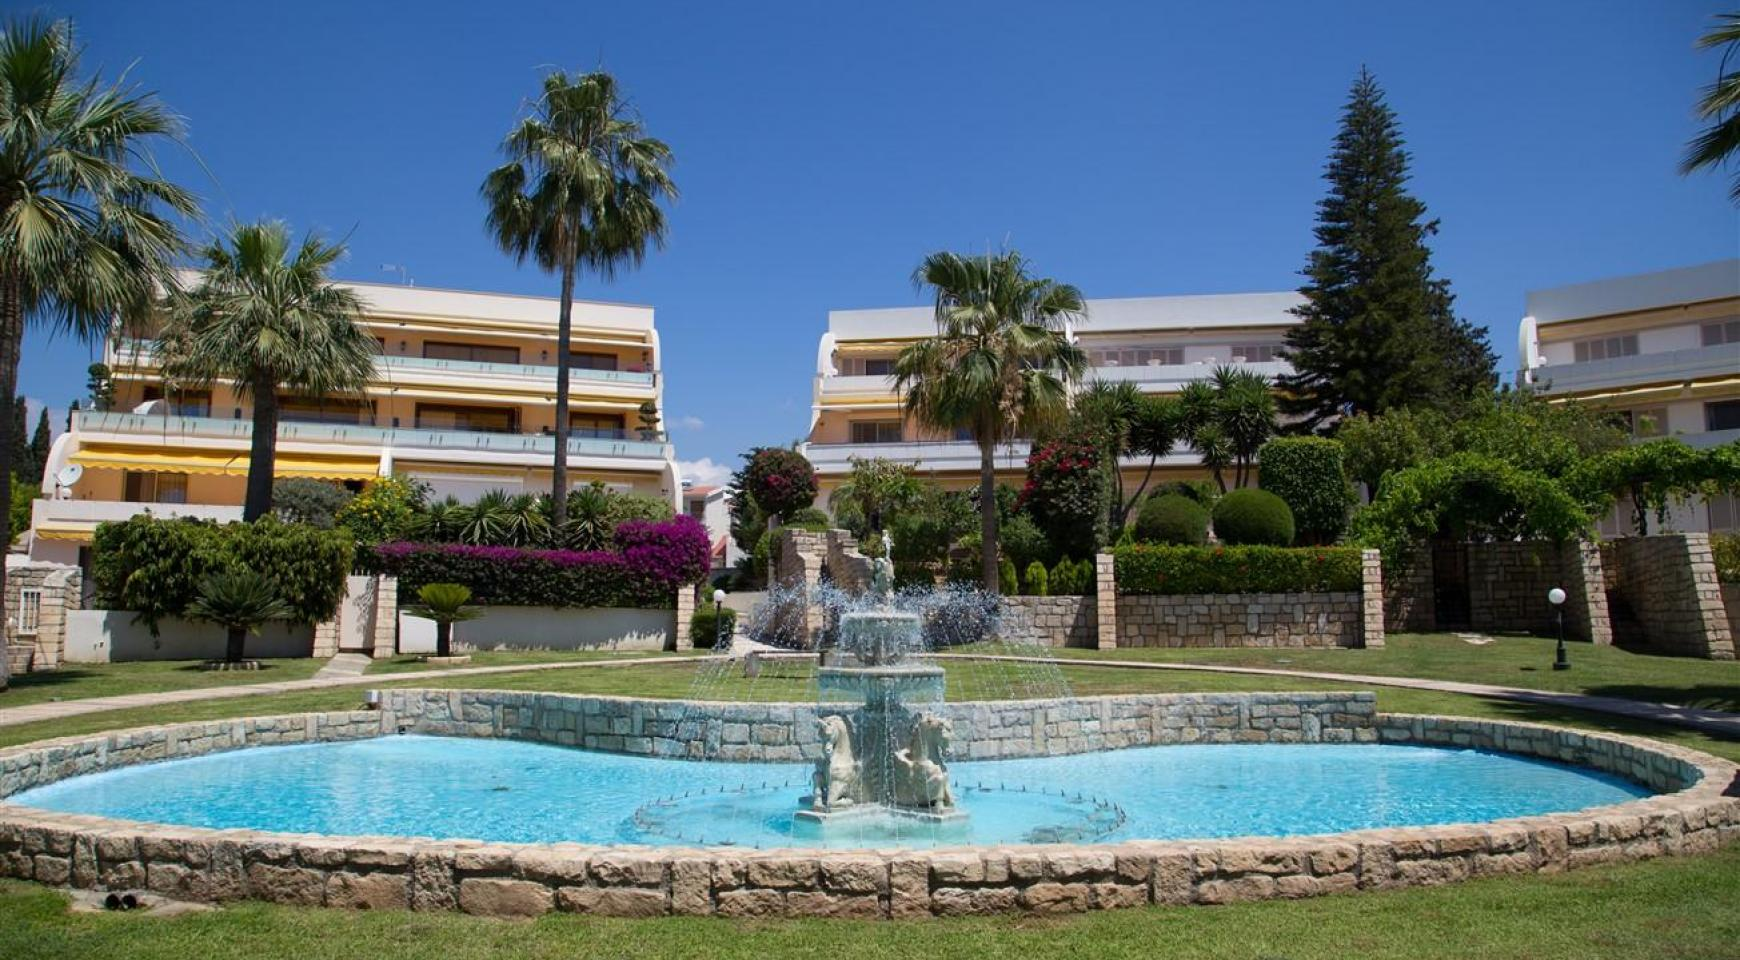 Luxury Modern 3 Bedroom Apartment in Thera Complex by the Sea - 2